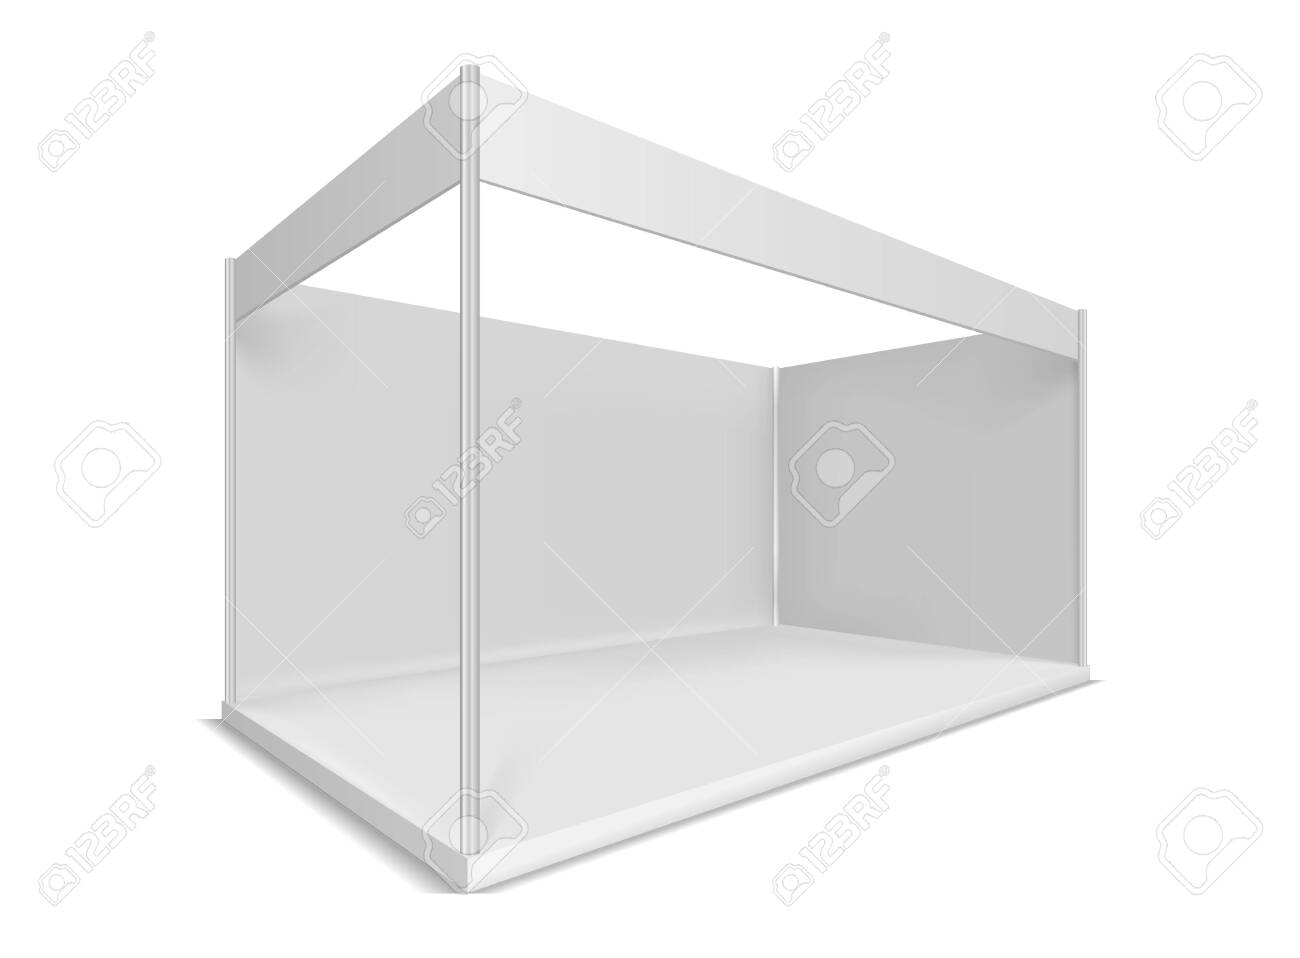 Trade show booth. Illustrations isolated on white background. Graphic concept for your design - 122194663